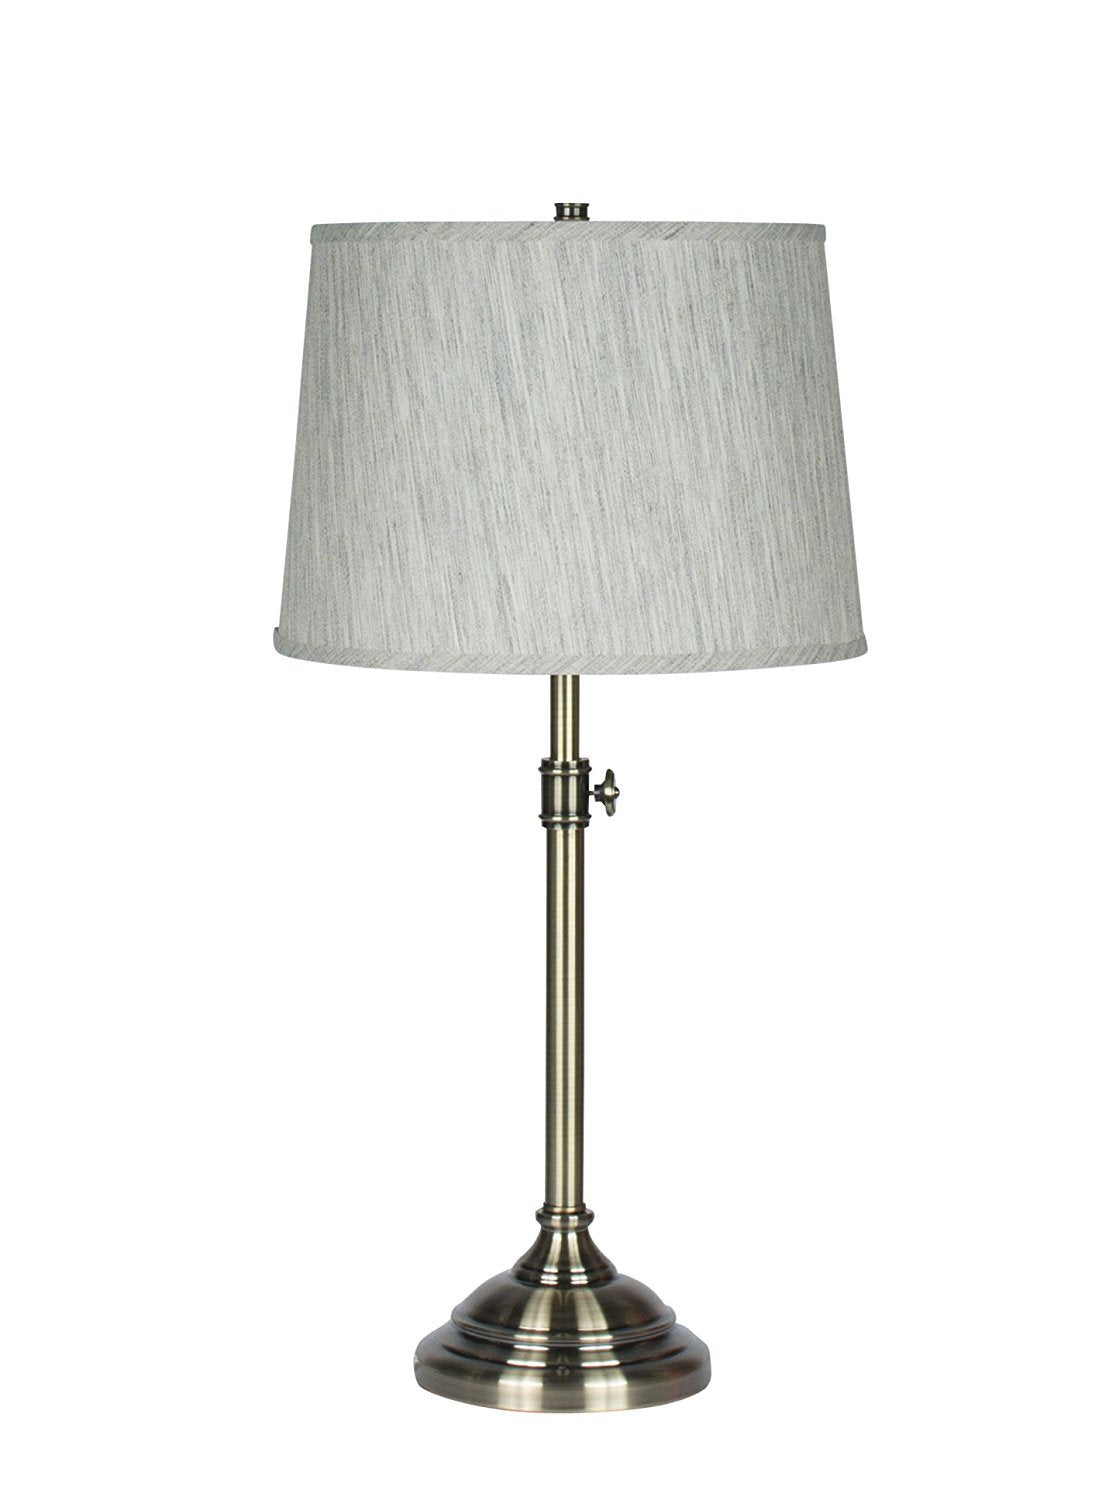 Windsor Adjustable Table Lamp